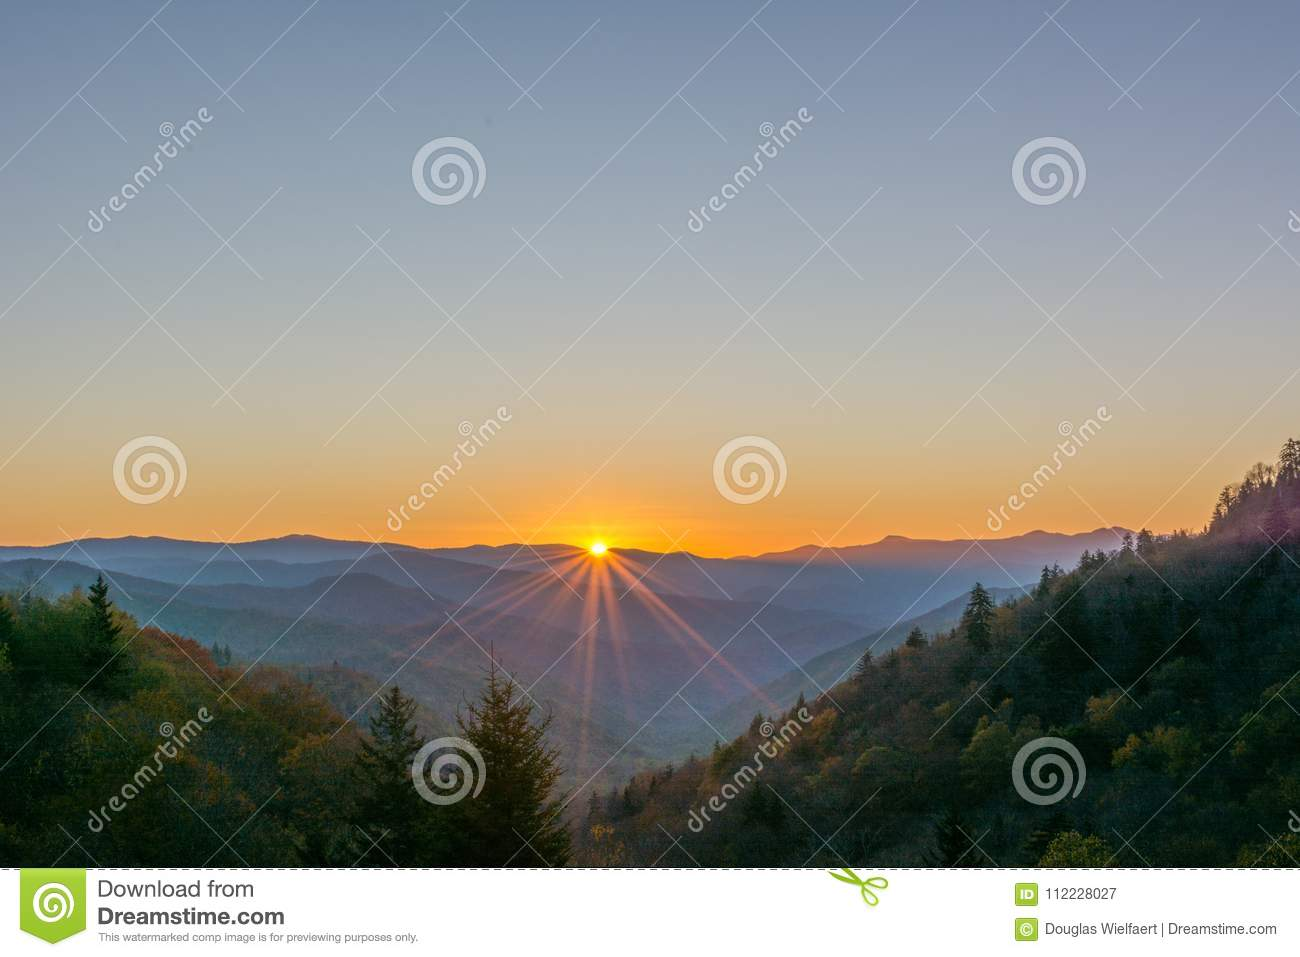 Sunburst, Great Smoky Mountains park narodowy